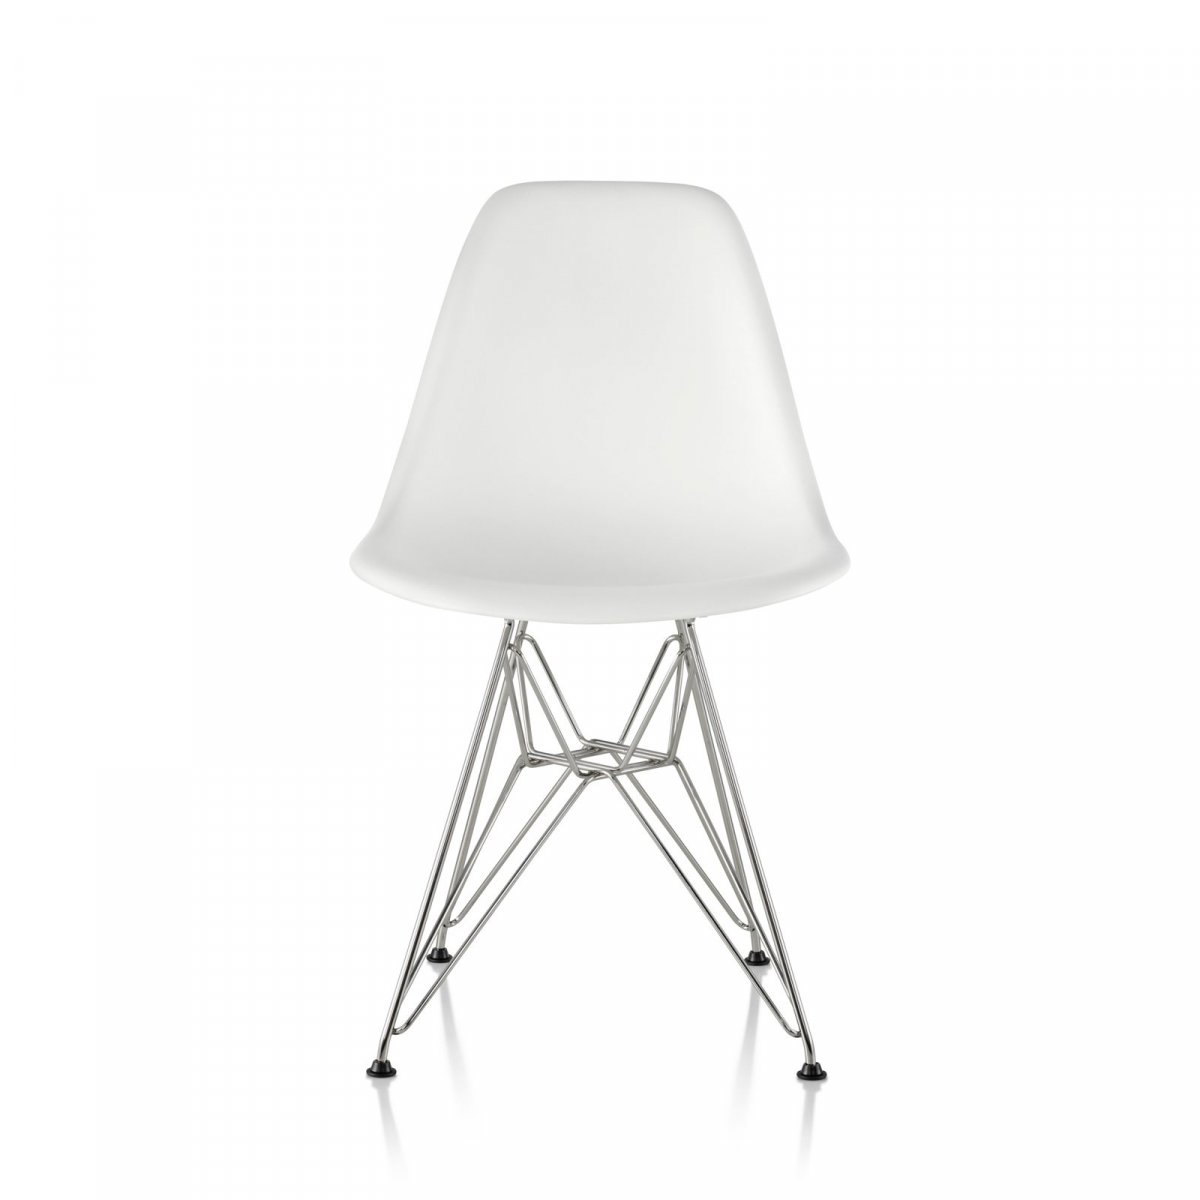 Eames Molded Plastic Side Chair Wire Base, white seat and back, trivalent chrome base, front view.